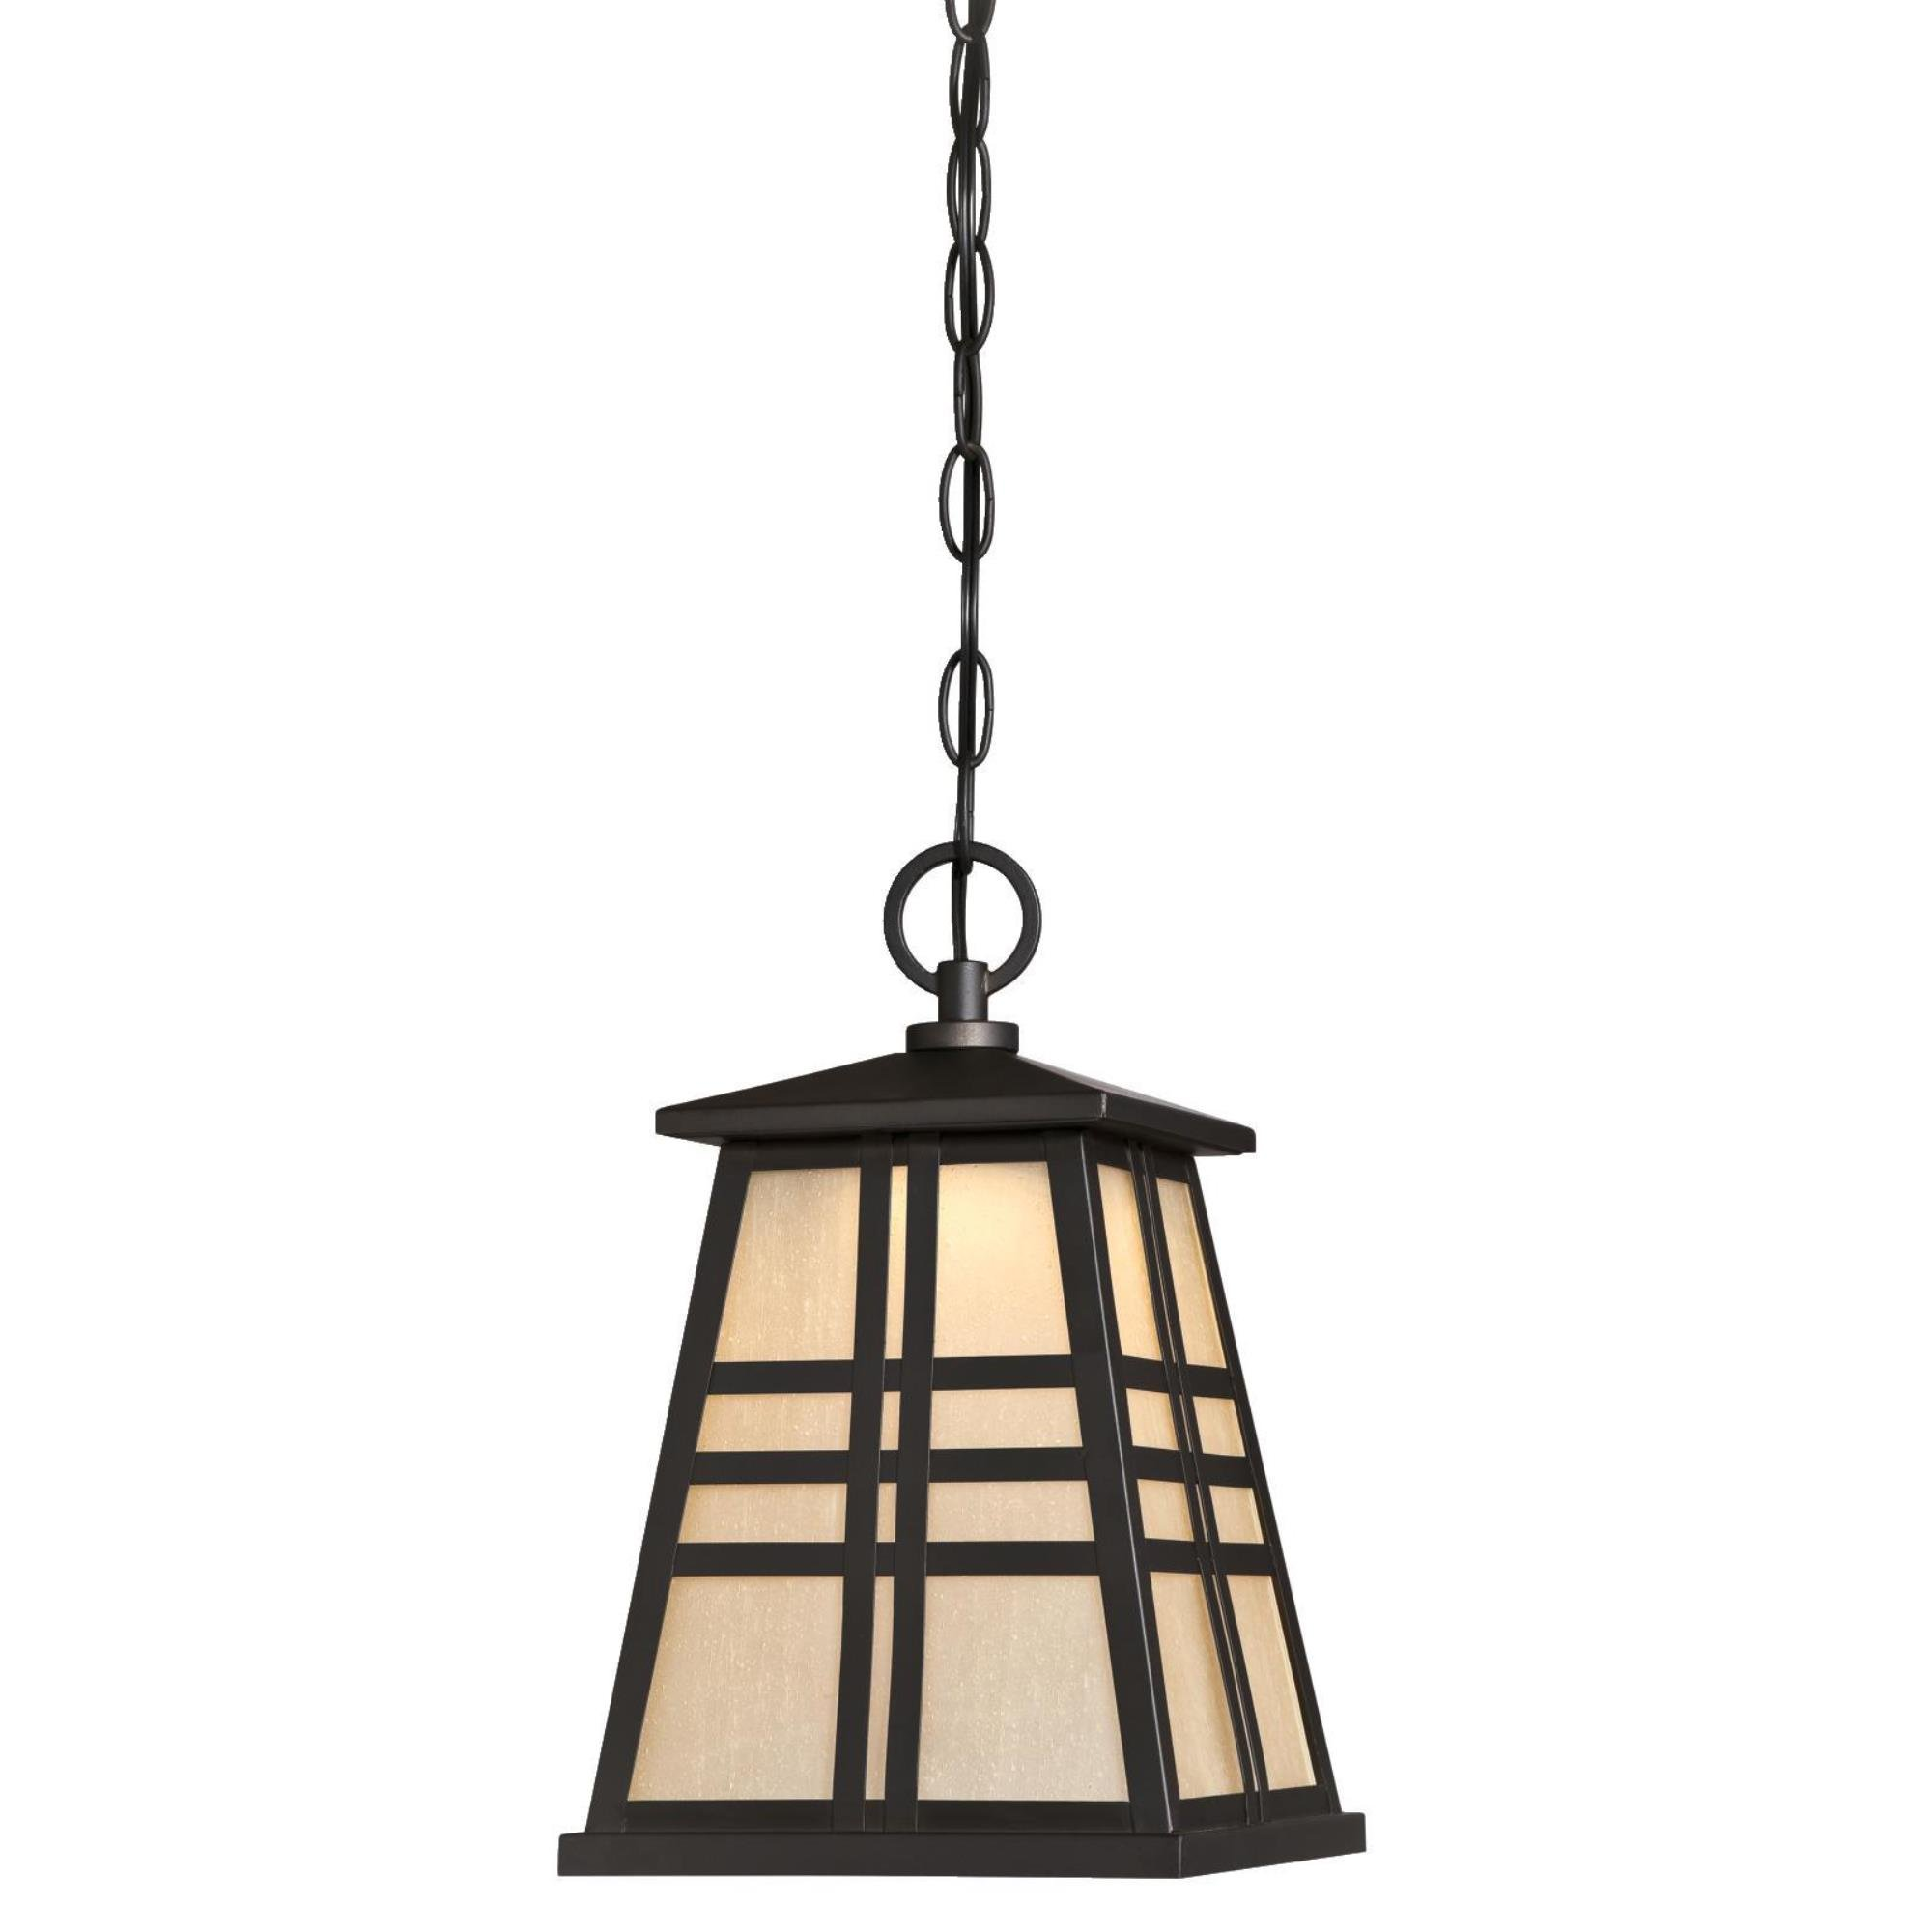 Westinghouse 6339800 Creekview One-Light LED Outdoor Pendant with Amber Frosted Seeded Glass, Oil Rubbed Bronze Finish by Westinghouse